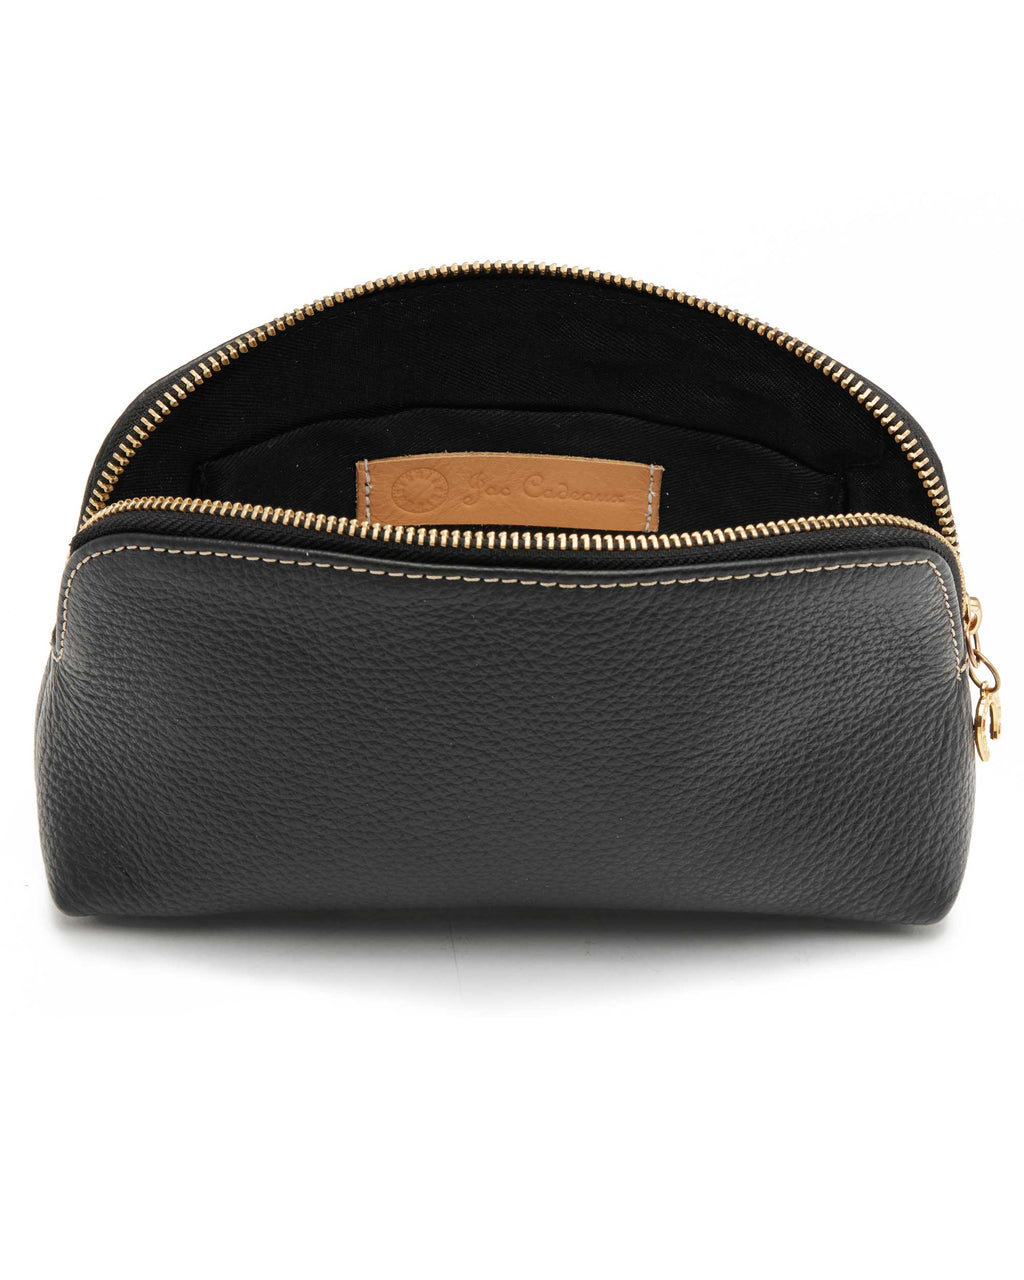 The Sanchia Pochette - Leather Cosmetic Pouch